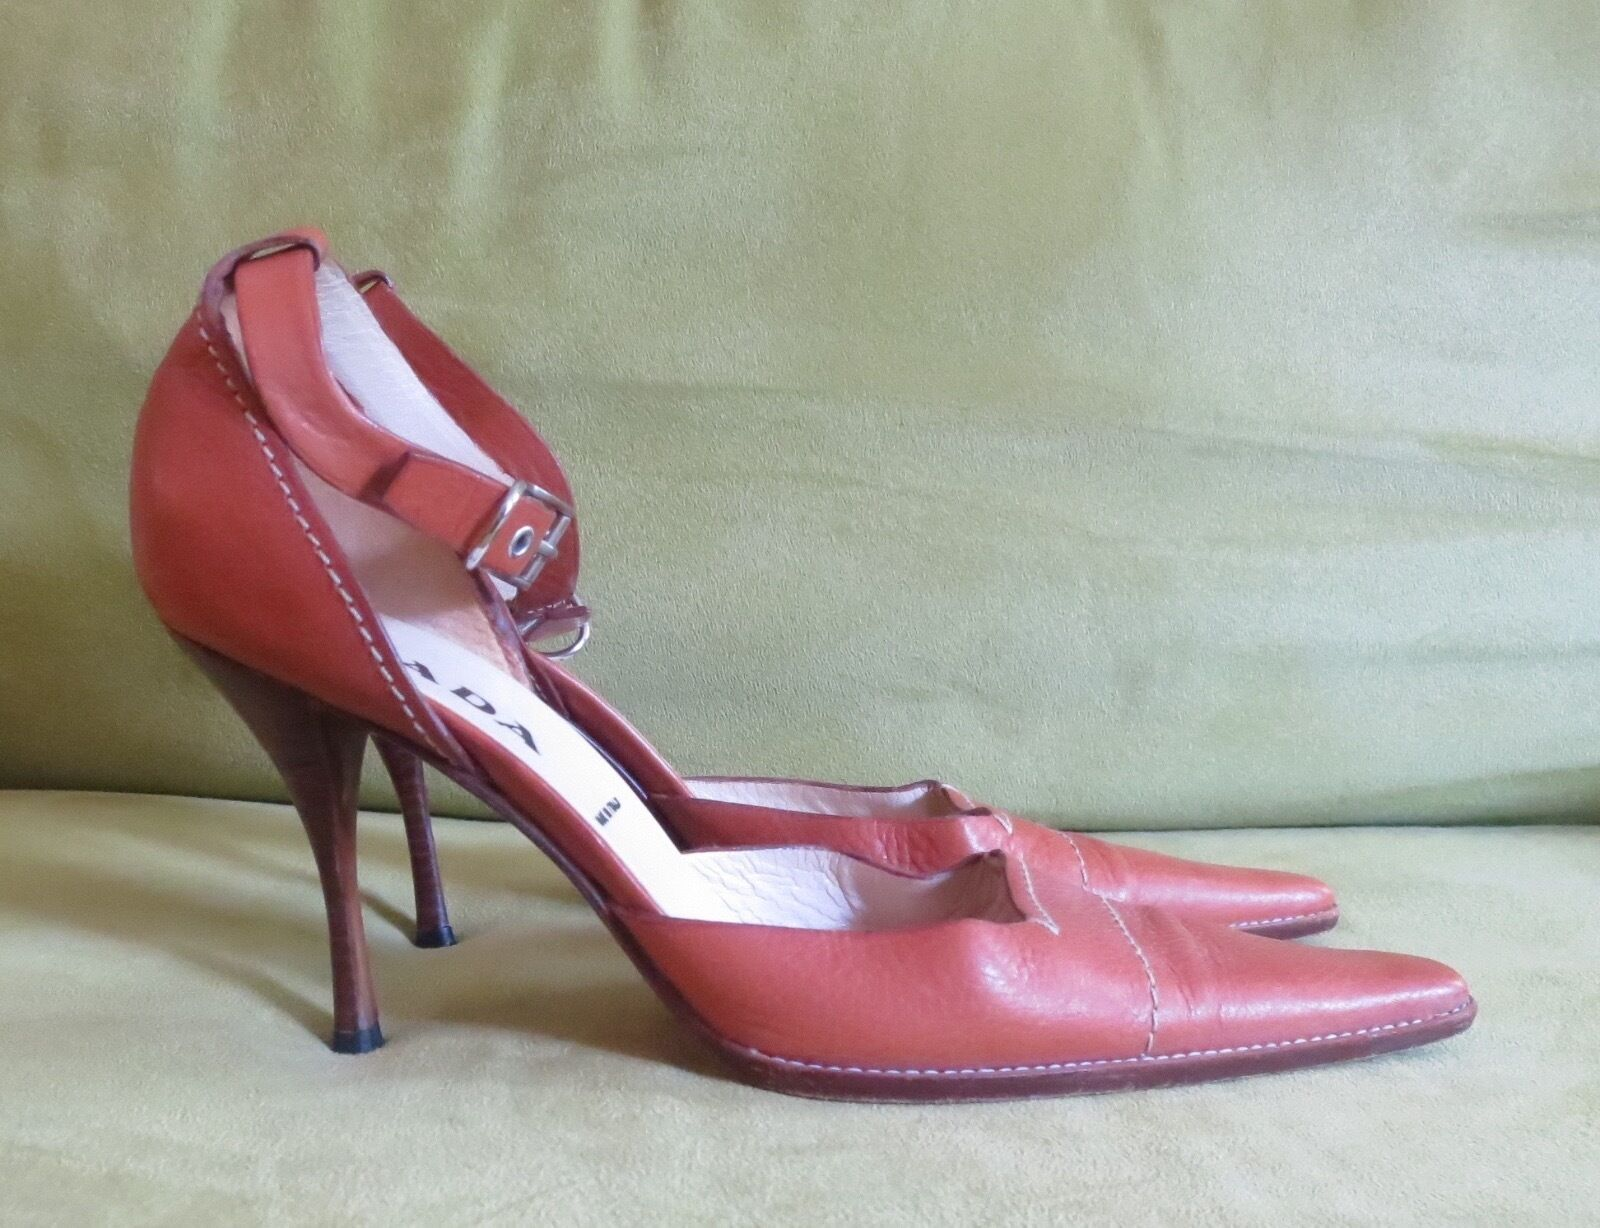 Prada saddle tan leather buckle strap high heel sandals scarpe pointed toe 38 8